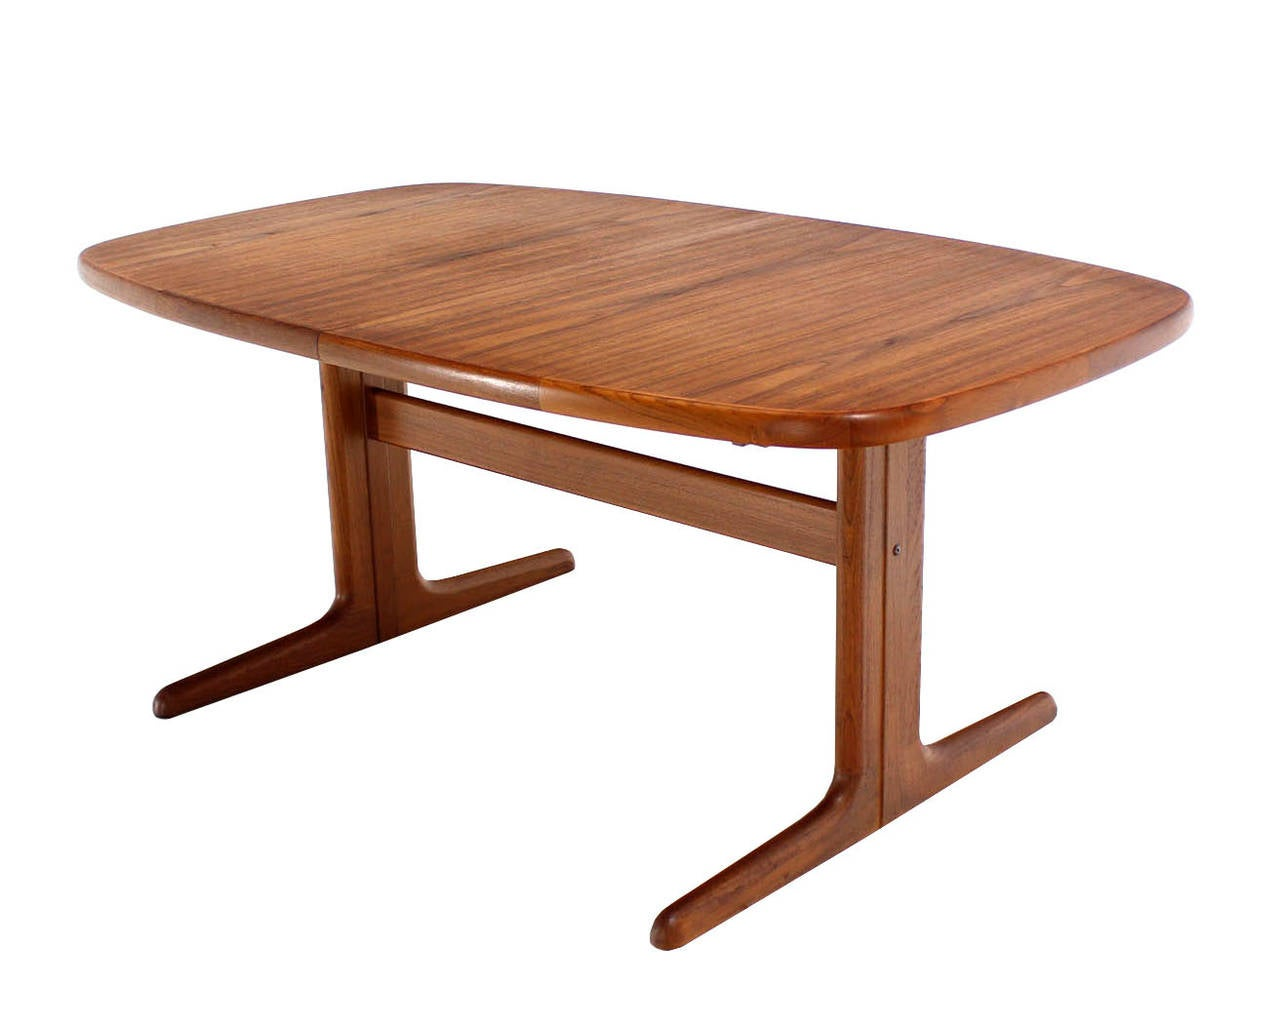 danish modern teak dining room table with two leaves at 1stdibs. Black Bedroom Furniture Sets. Home Design Ideas